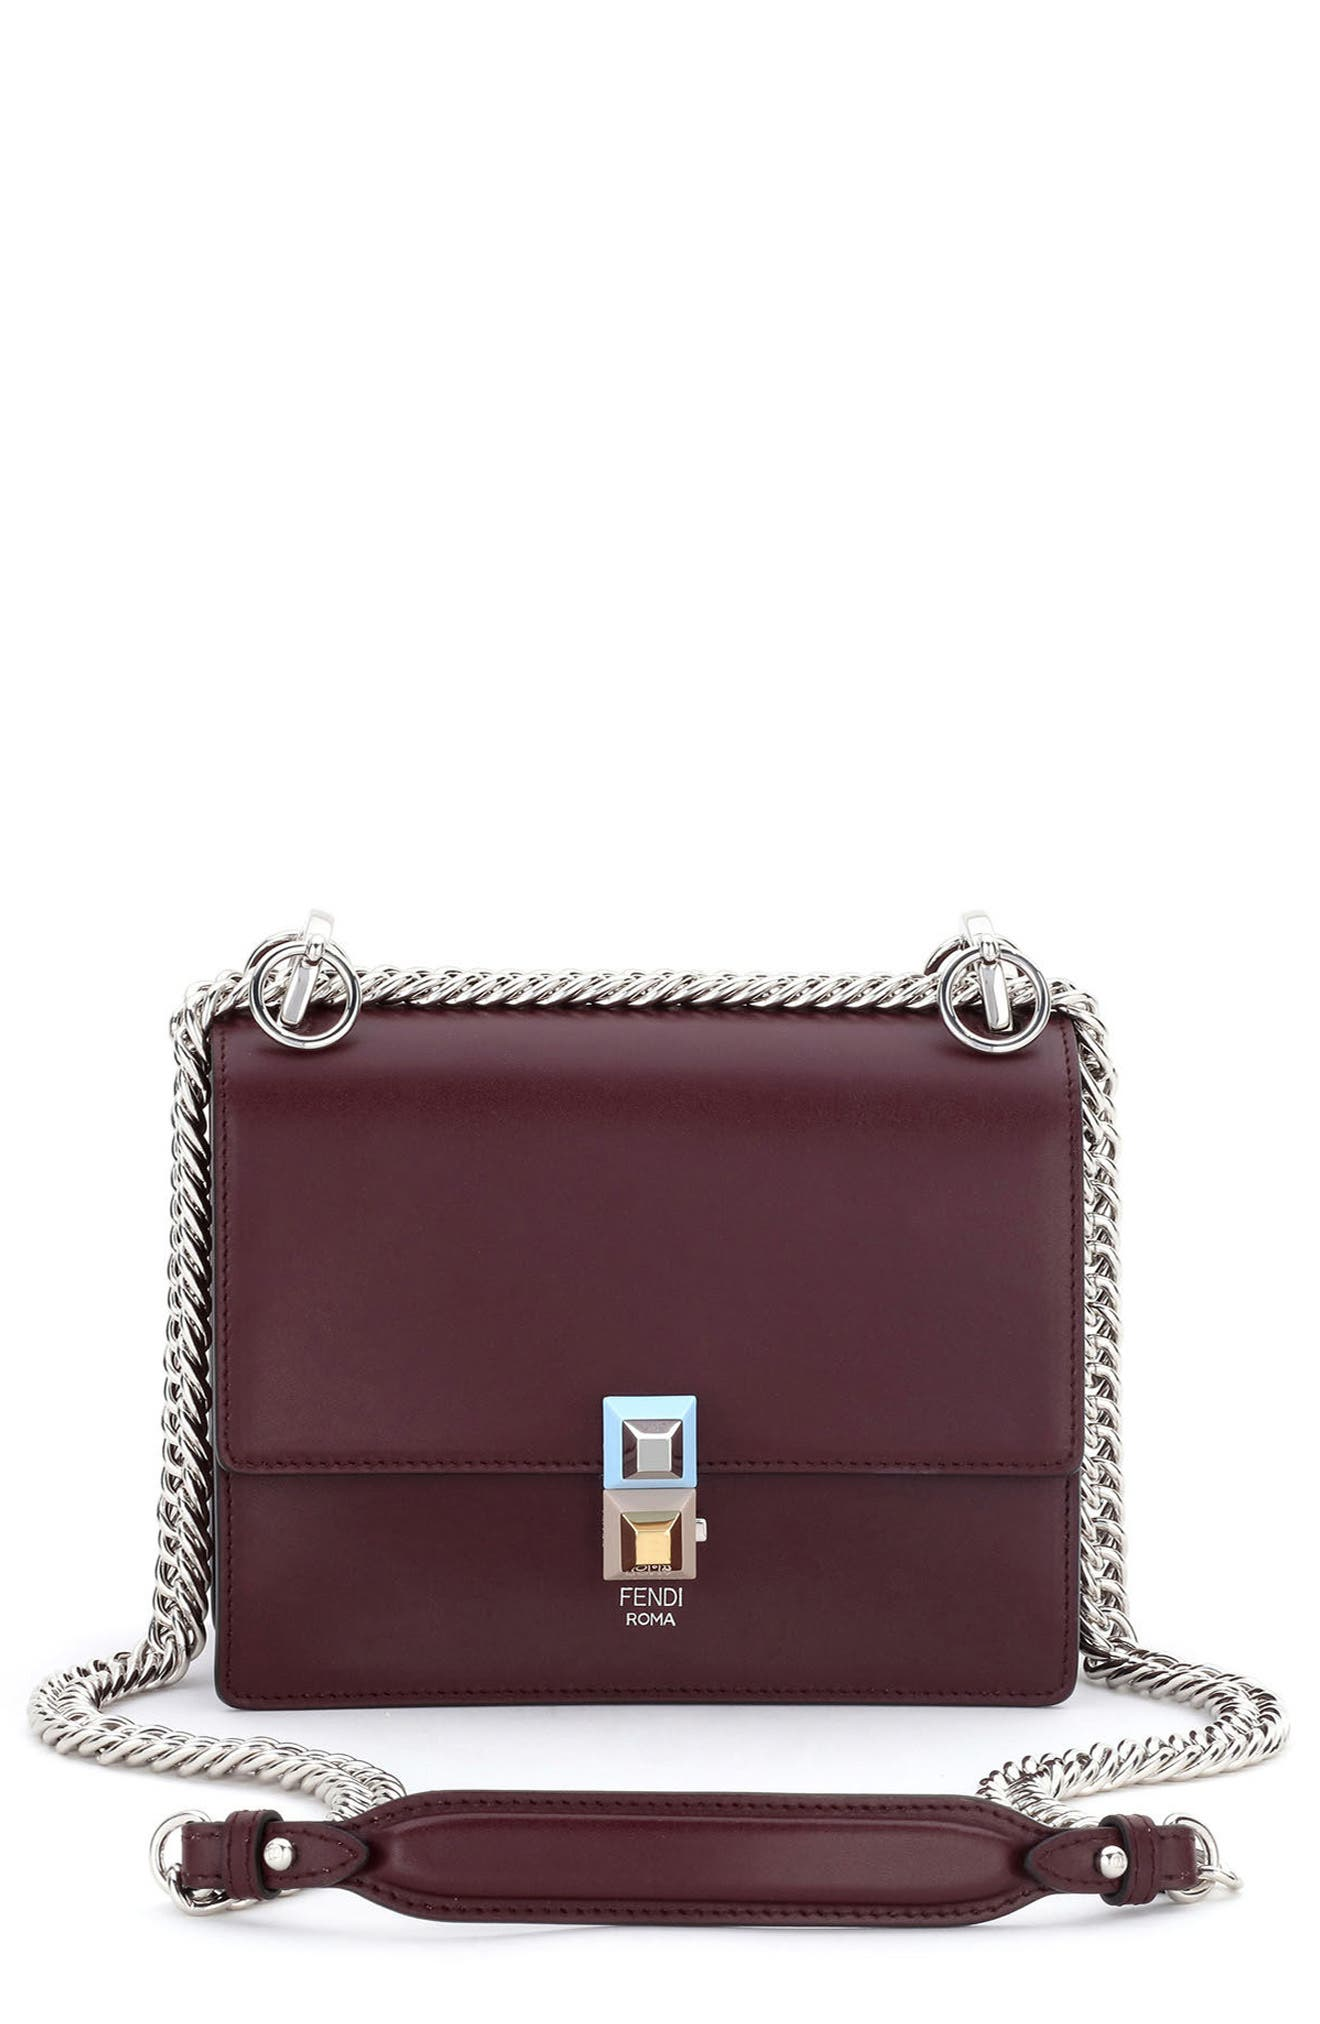 Fendi Small Kan I Leather Bag